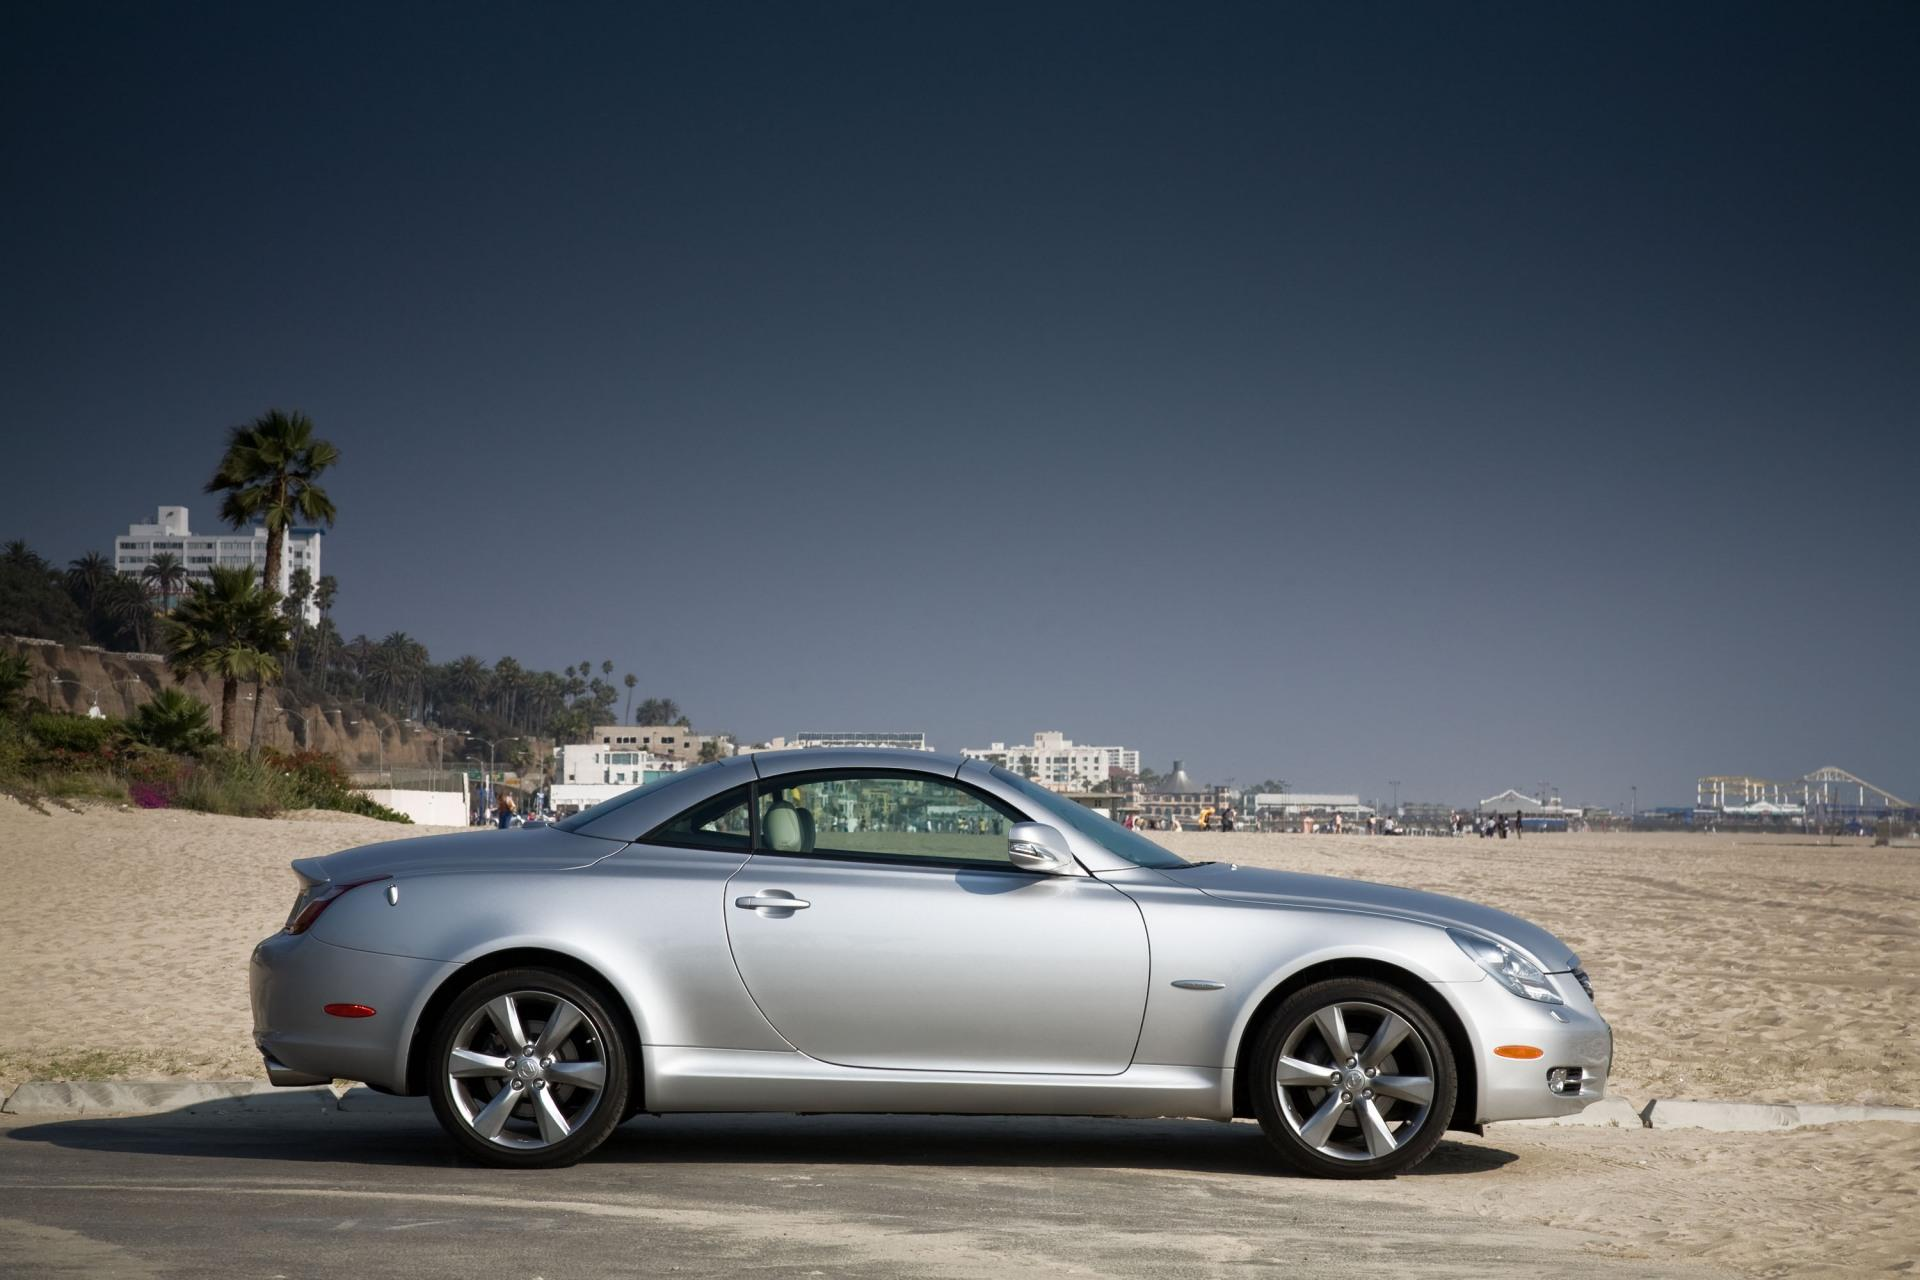 Car Audio Wallpaper Phone 2010 Lexus Sc 430 Conceptcarz Com